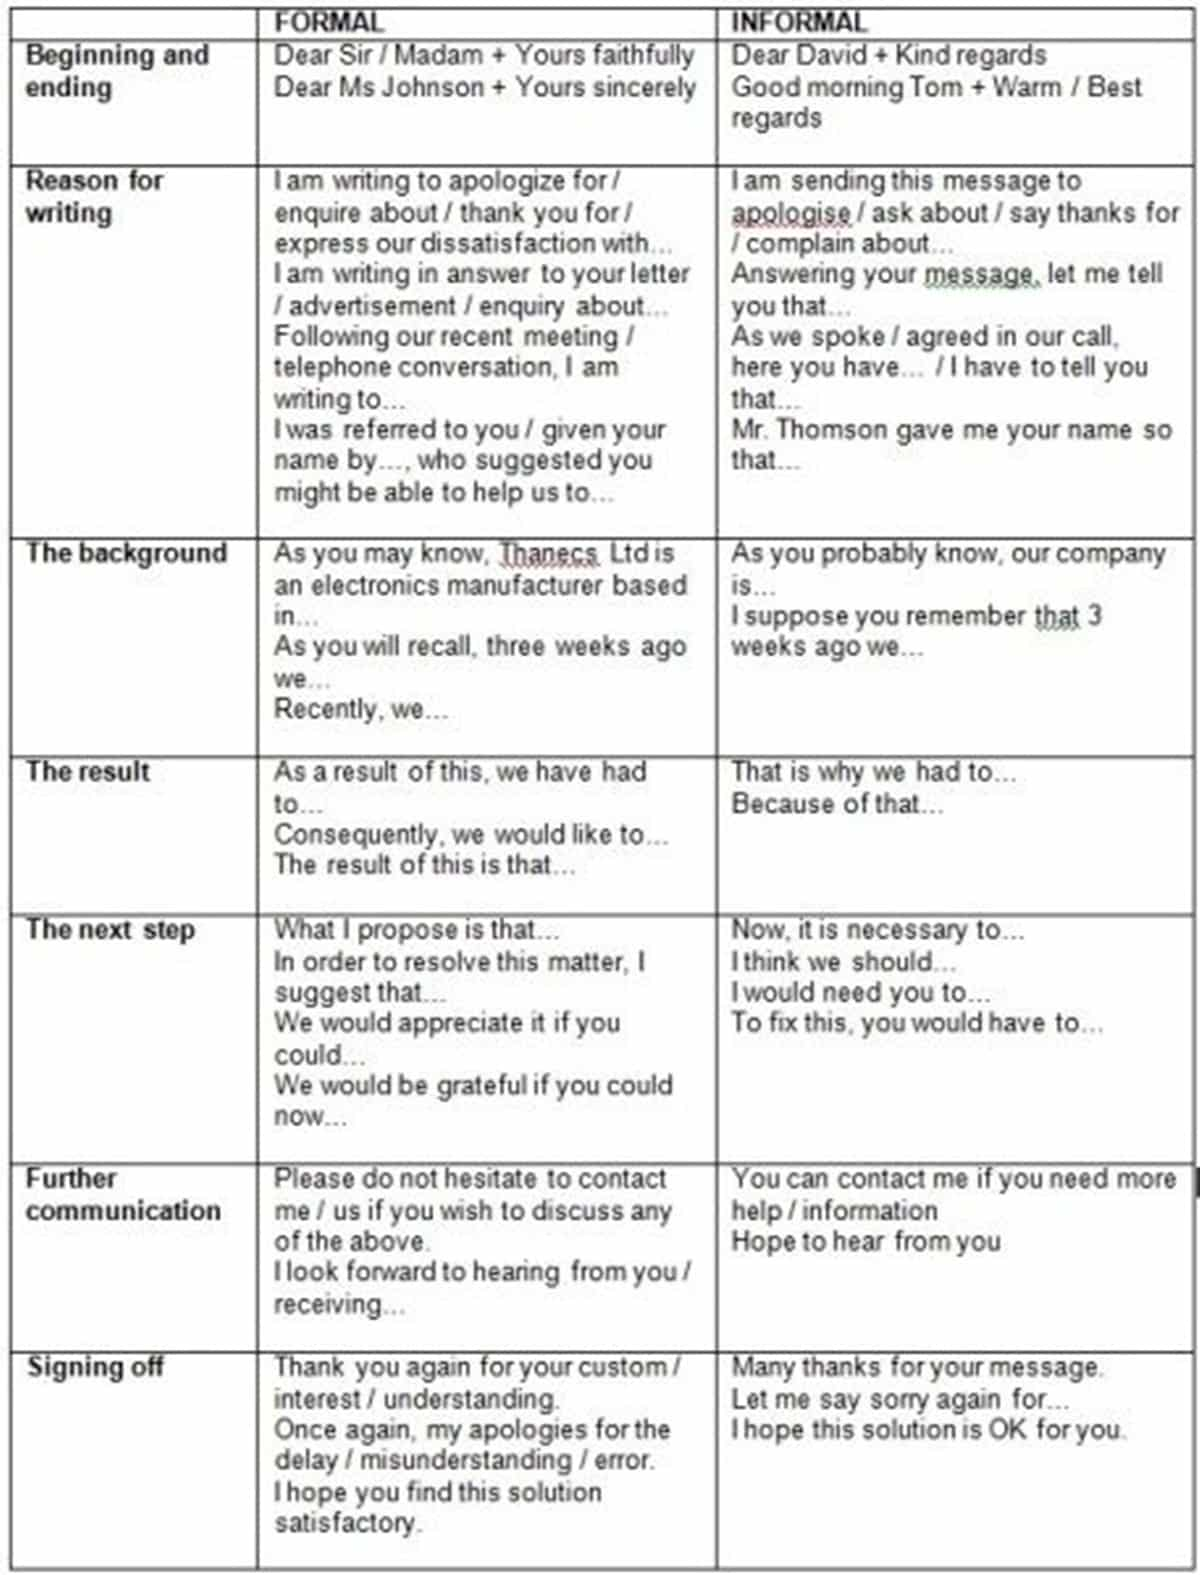 Differences between Formal vs. Informal Letters 18